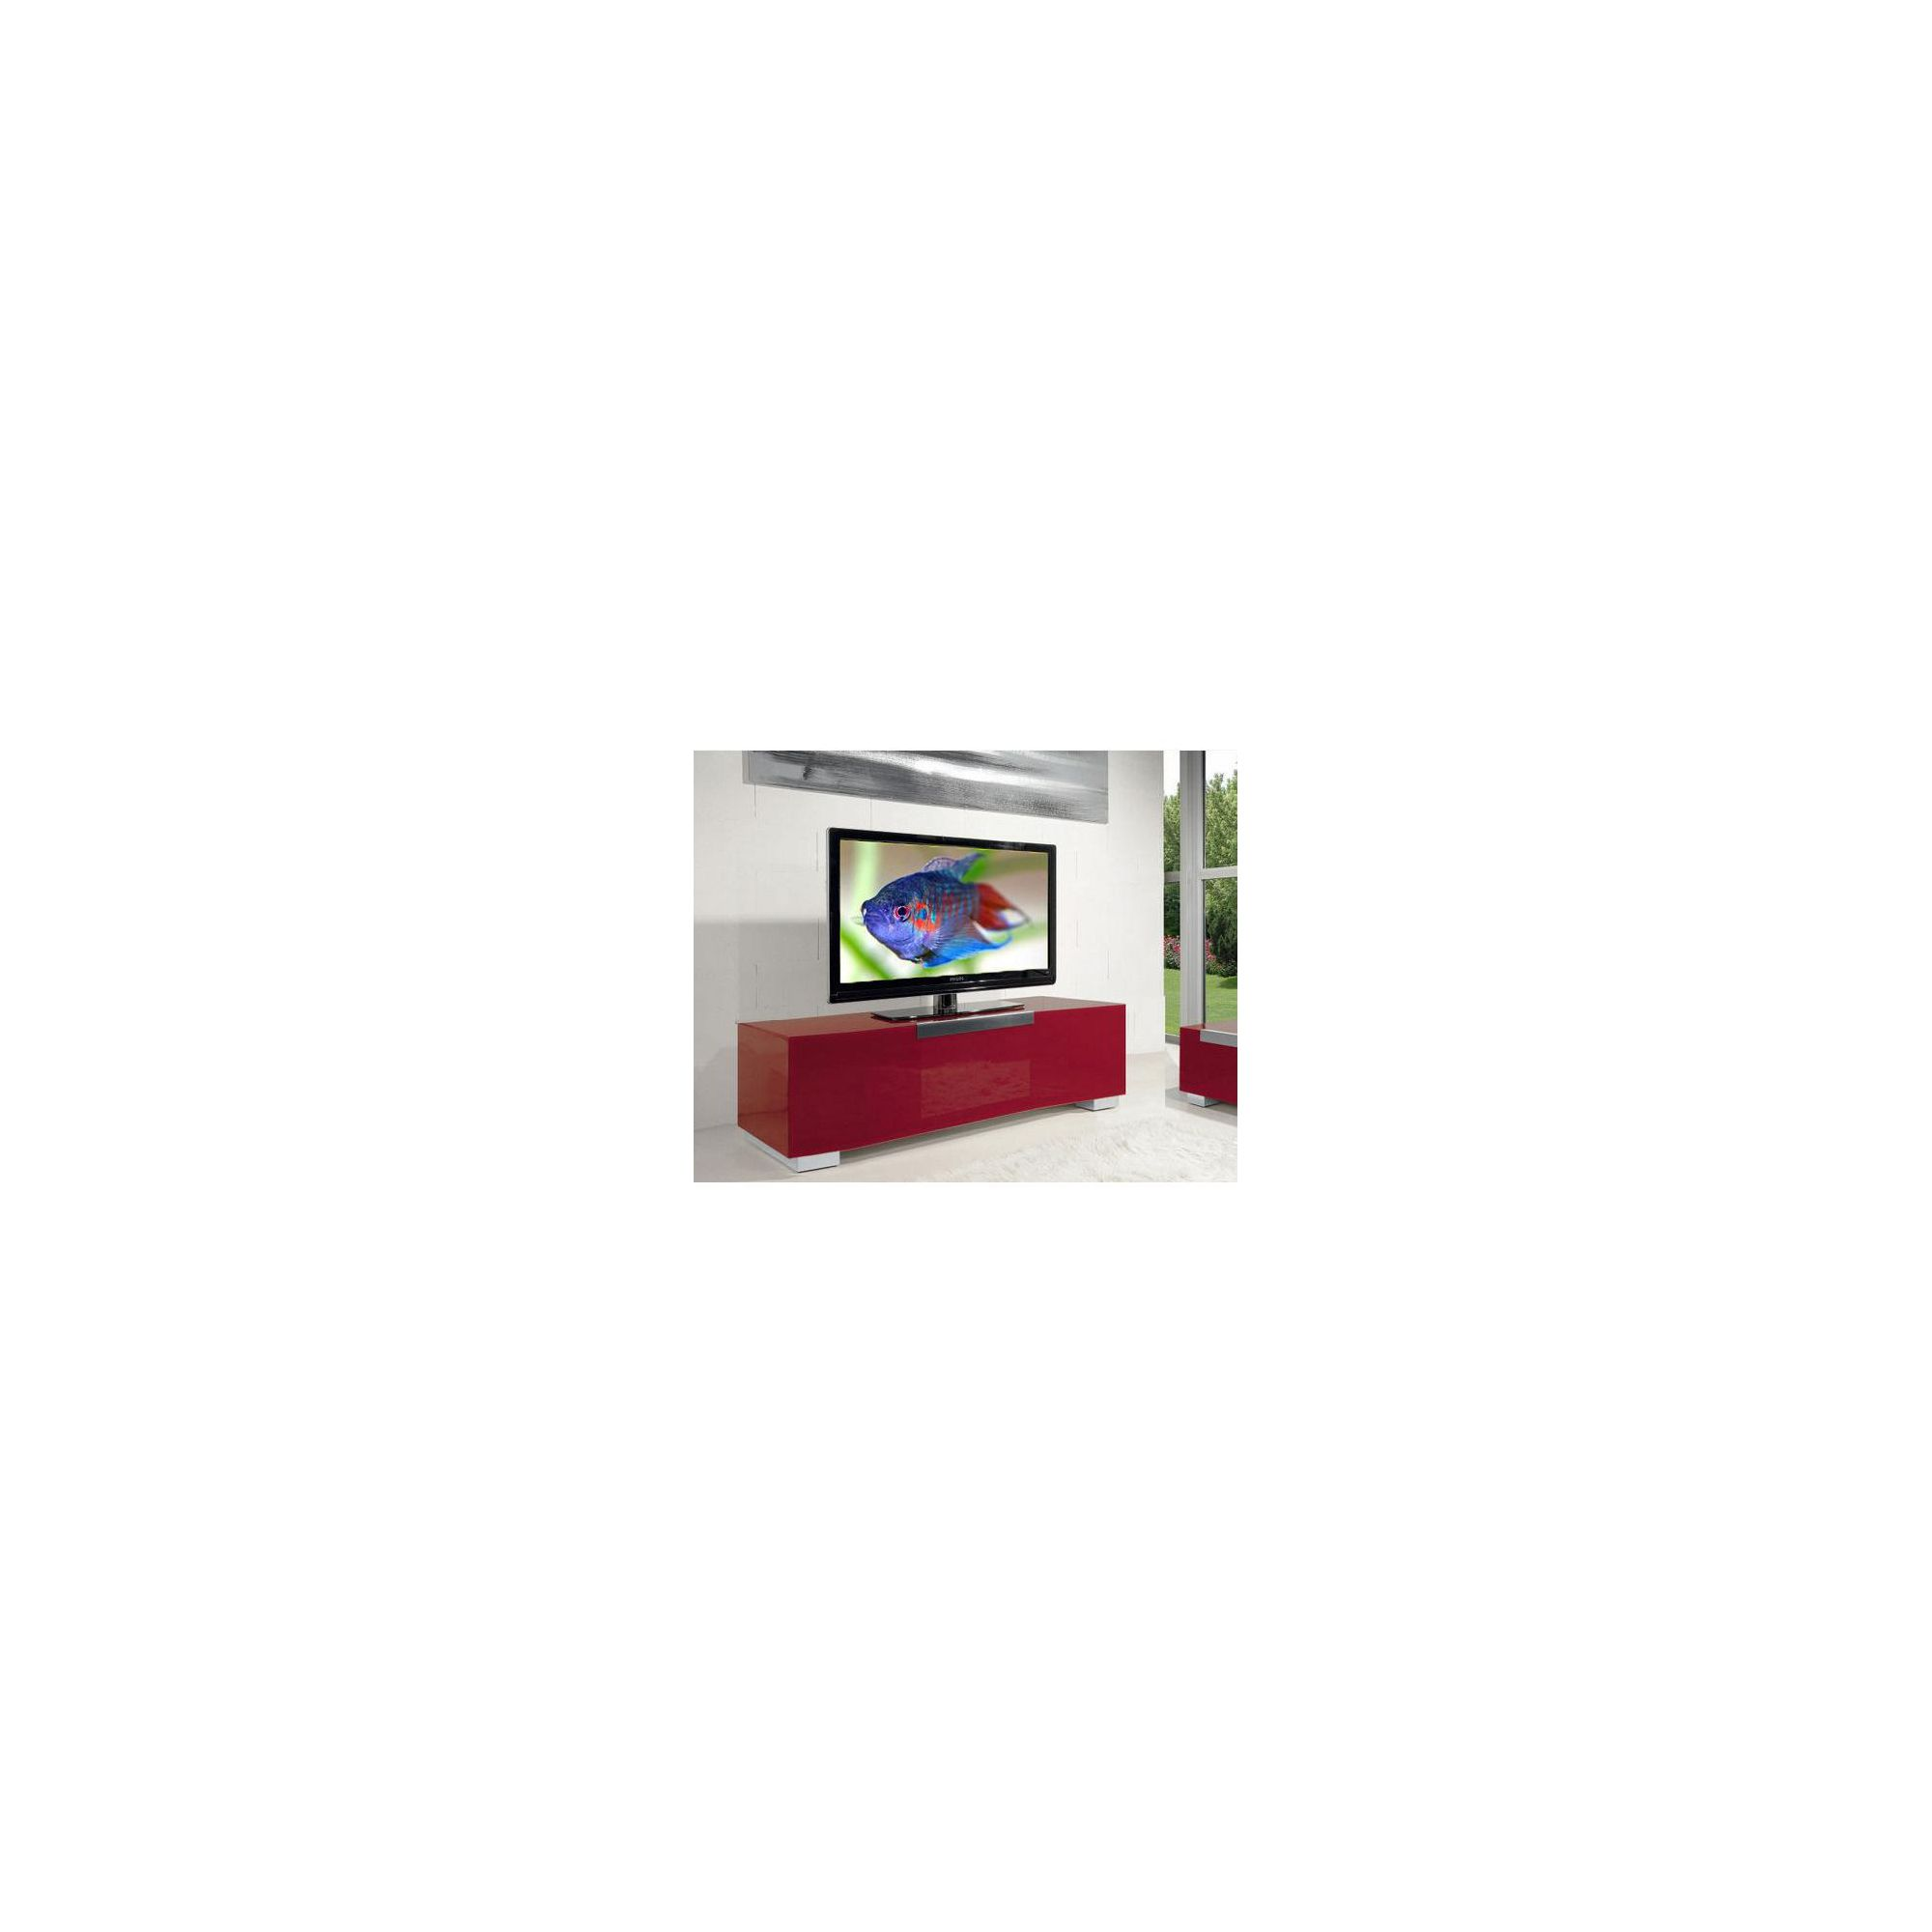 Triskom Stainless Steel / Glass TV Stand for LCD / Plasmas - Red Glass at Tesco Direct